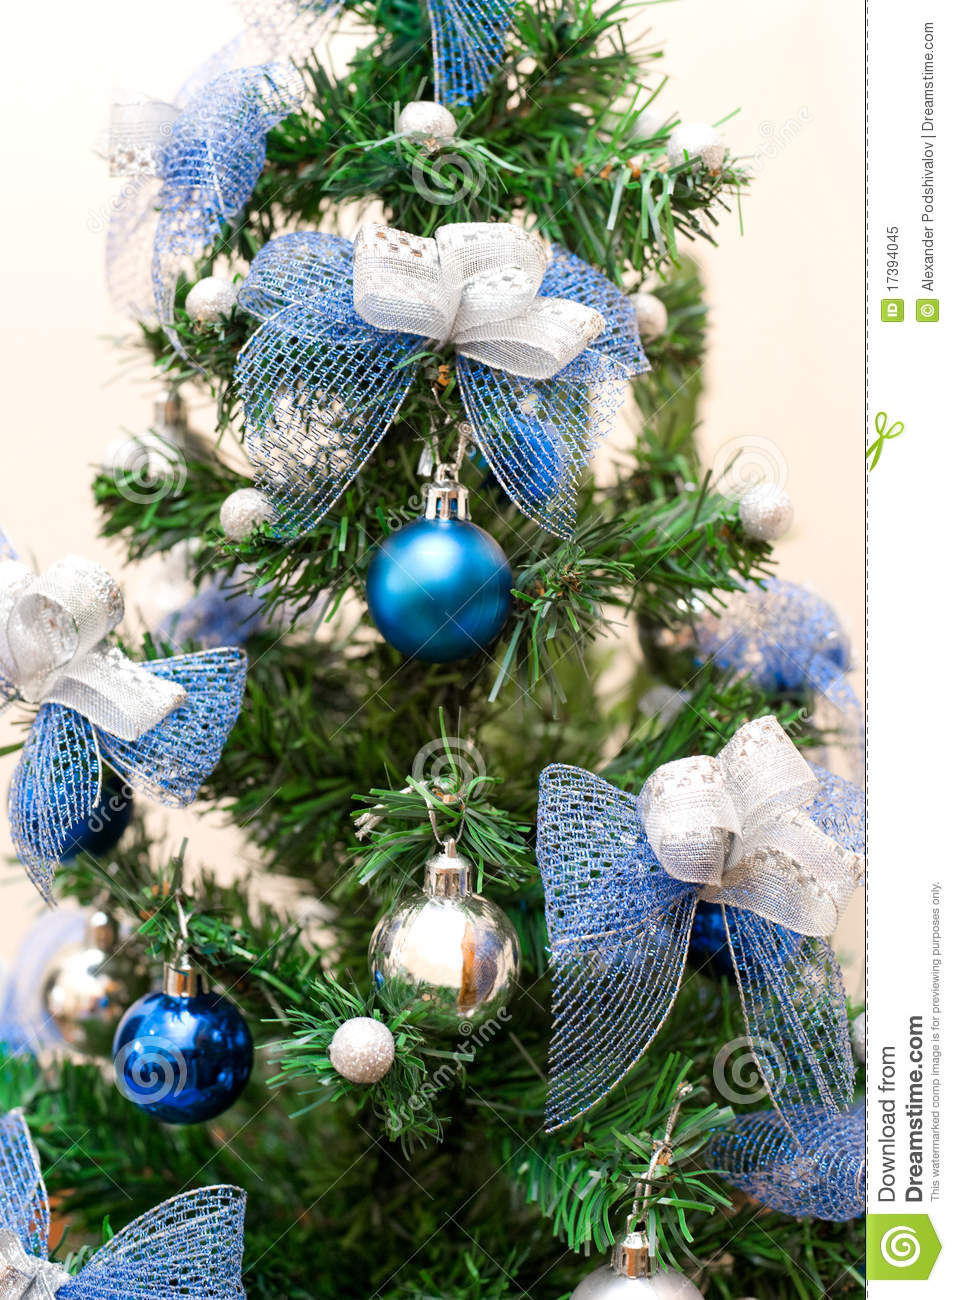 Blue and gold christmas tree decorations - Blue And Gold Christmas Tree Decorations 82